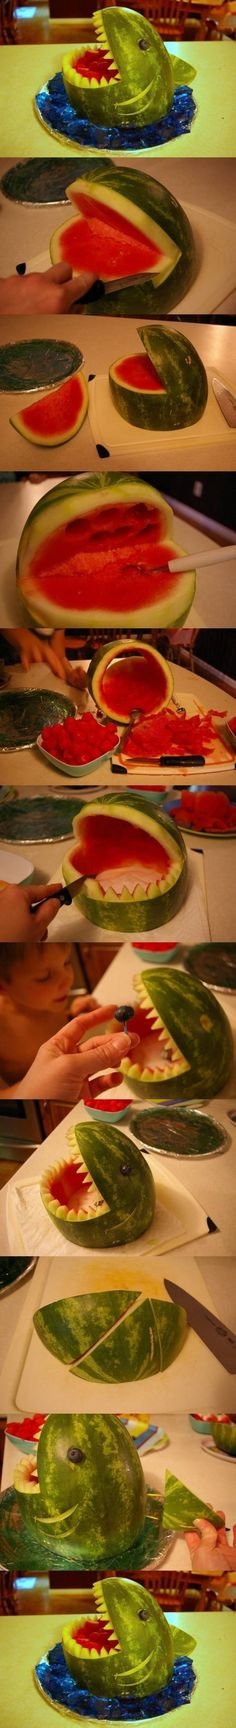 How To Make A Watermelon Shark summer food fruit diy how to tutorial party ideas party food party favors food art tutorials summer ideas food carving Ocean Party, Water Party, Luau Party, Watermelon Shark Carving, Shark Watermelon, Watermelon Dessert, Watermelon Recipes, Deco Fruit, Hawaian Party